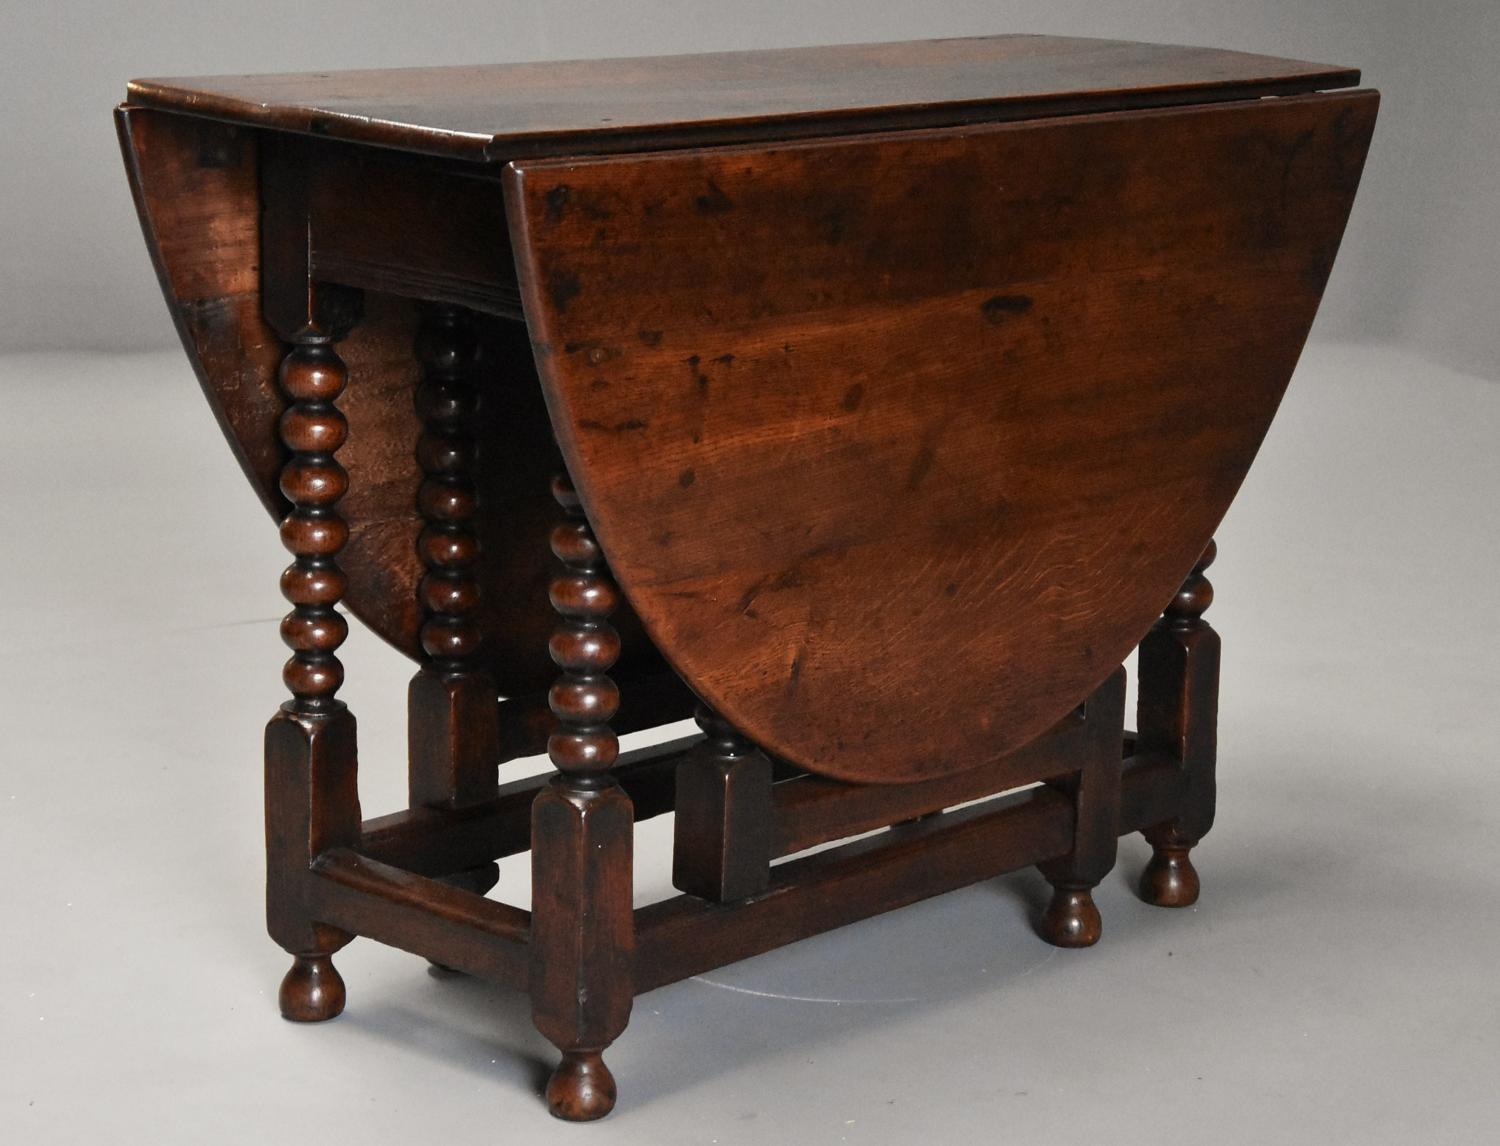 Late 17th century oval oak gateleg table